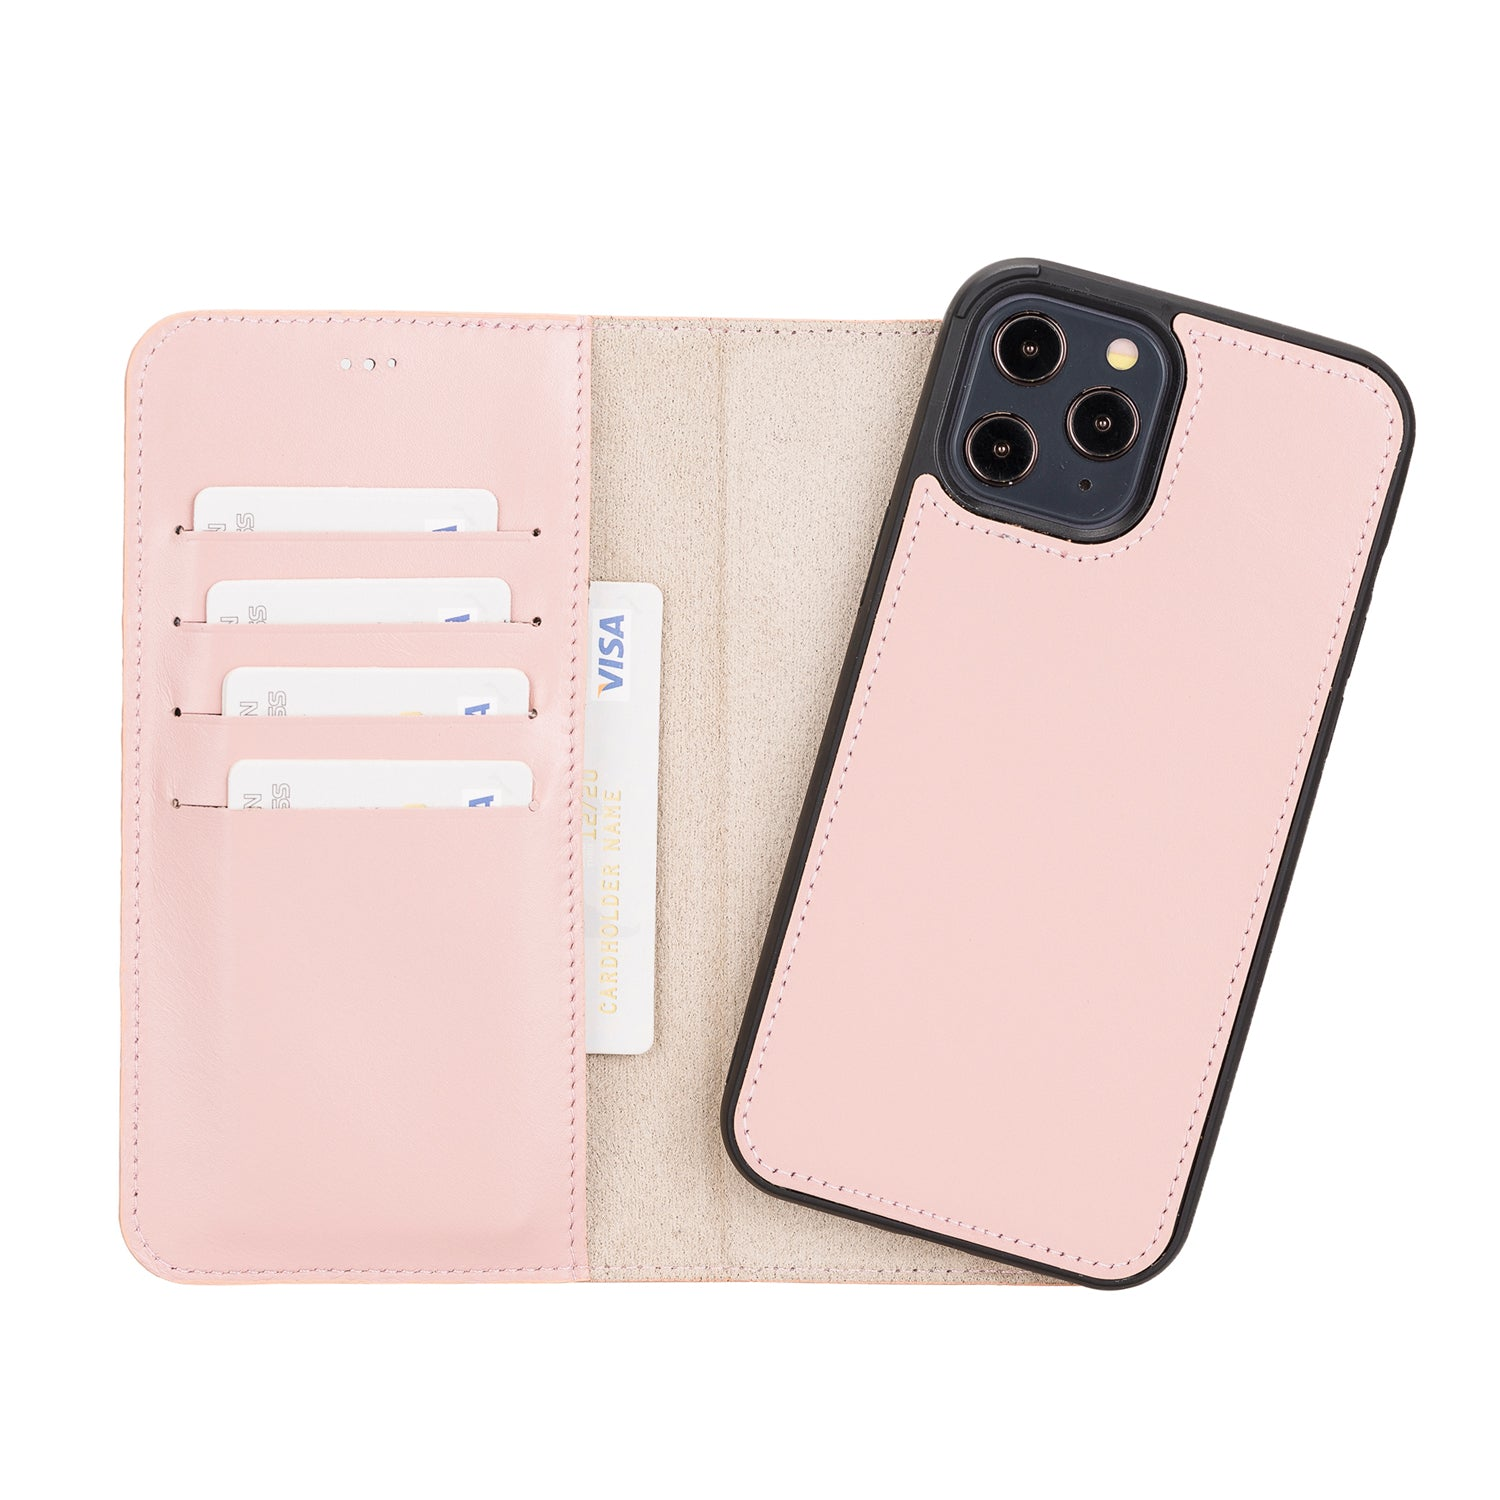 "Magic Magnetic Detachable Leather Wallet Case for iPhone 12 Pro Max (6.7"") - PINK - saracleather"